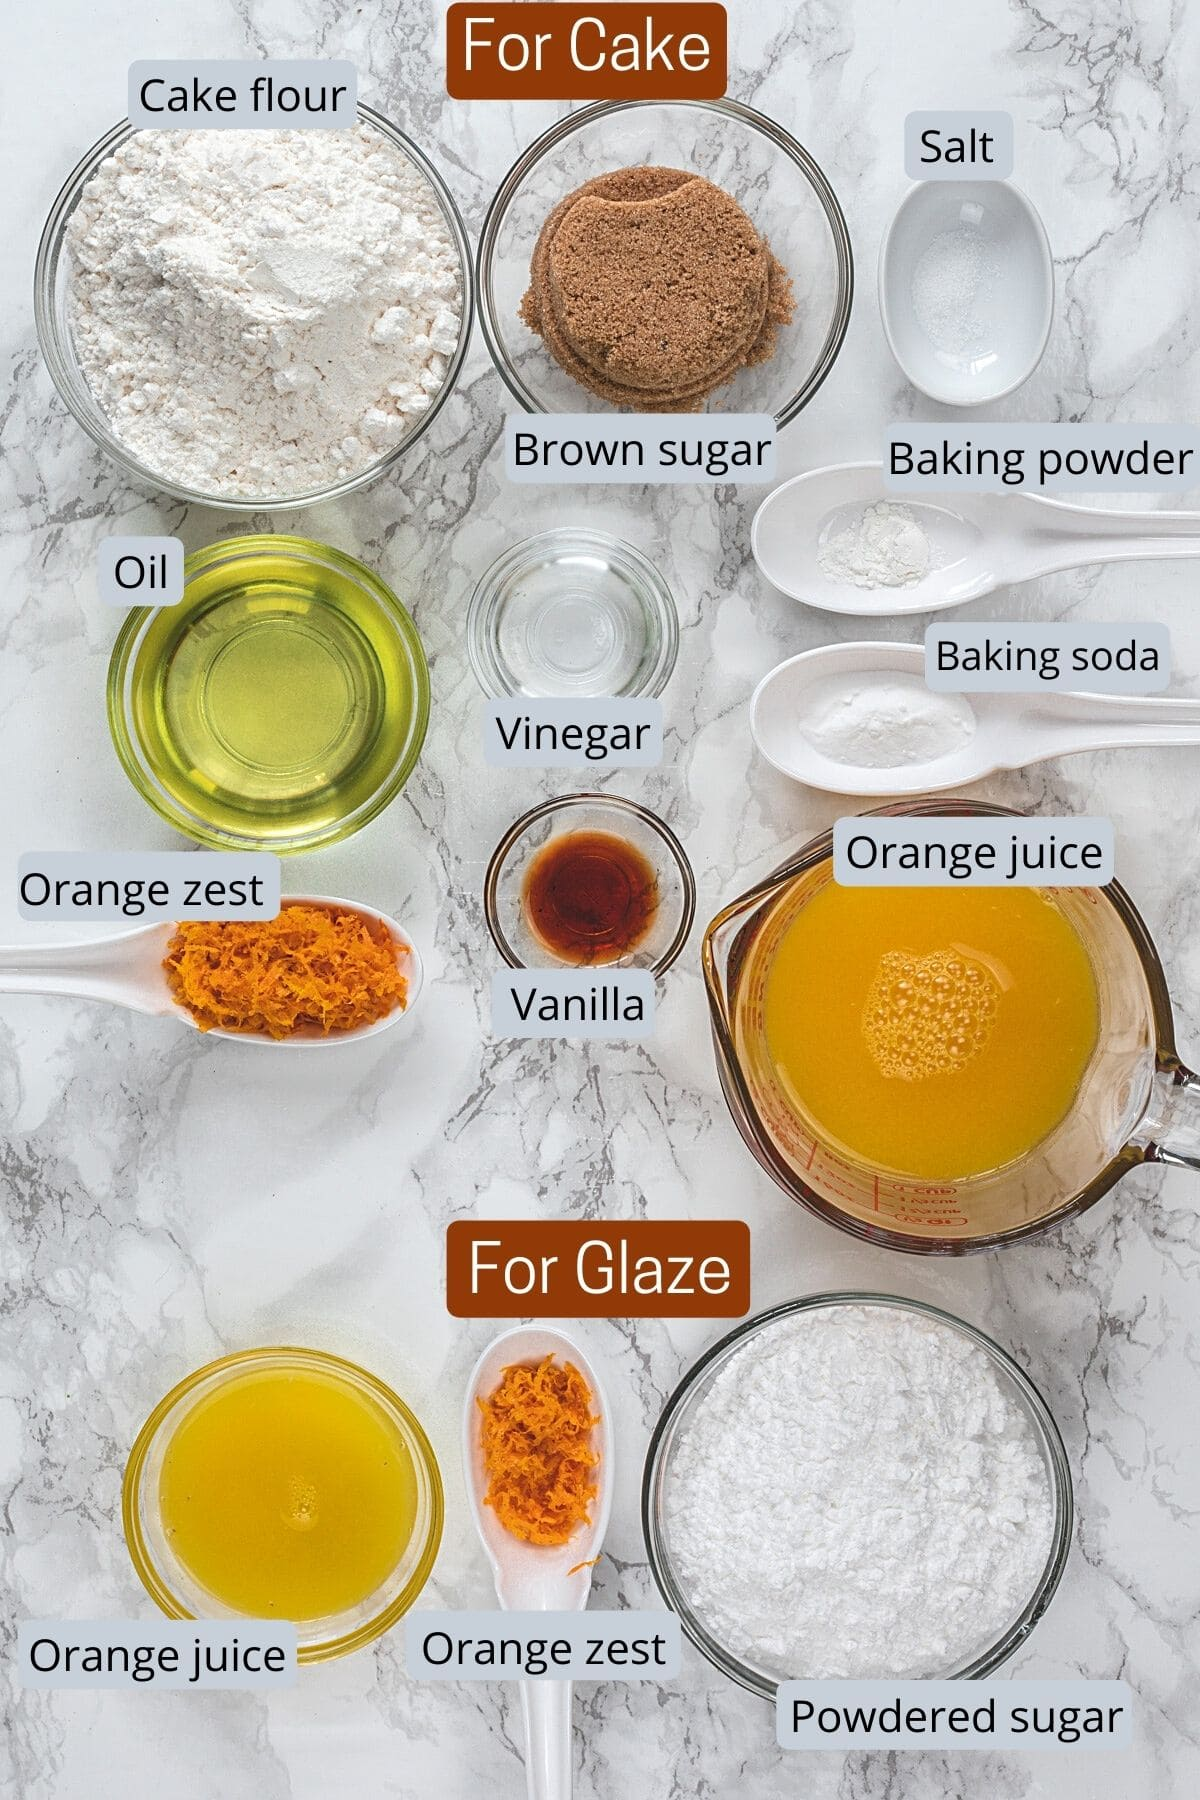 Ingredients for eggless orange cake in individual bowls and spoons.